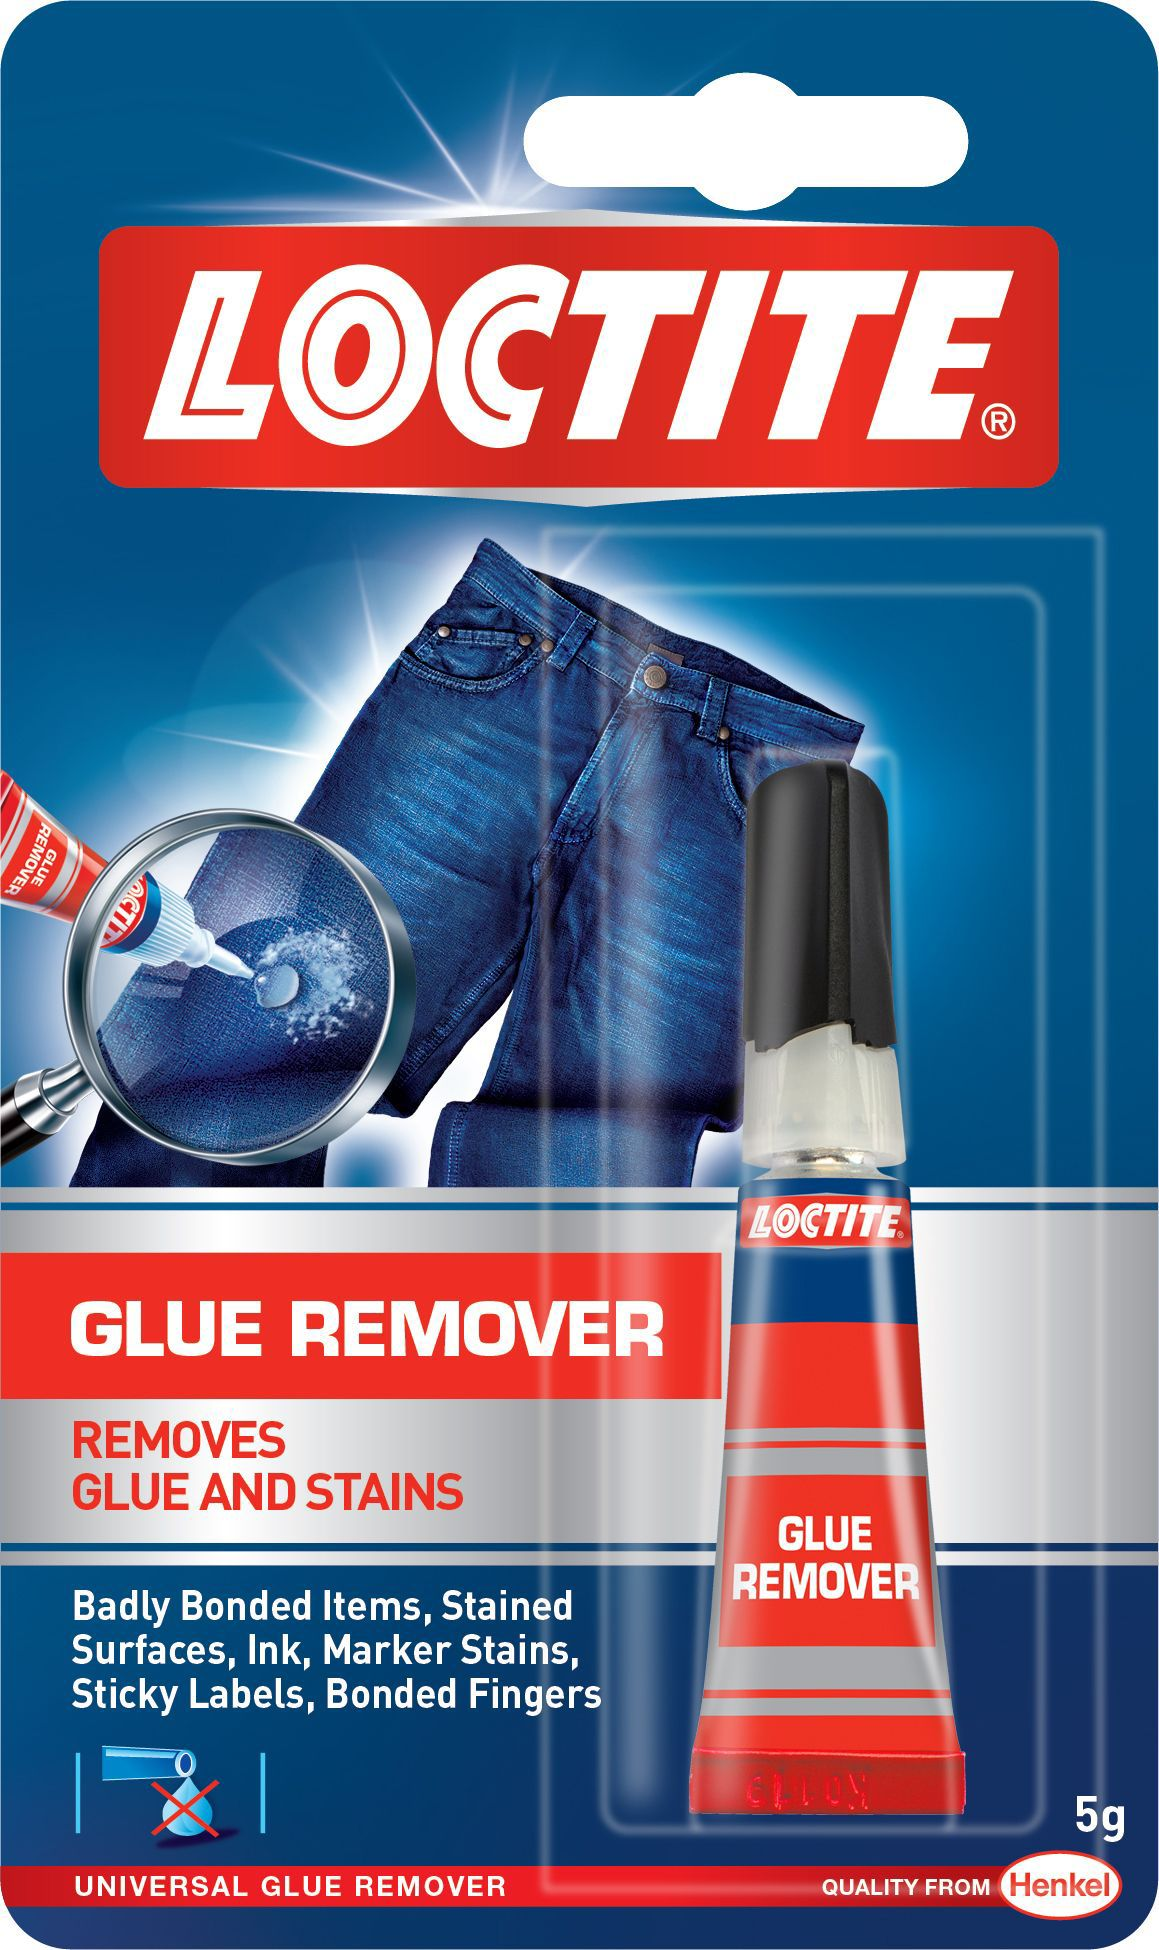 kitchen appliences pots and pans set loctite glue remover 5g | departments diy at b&q